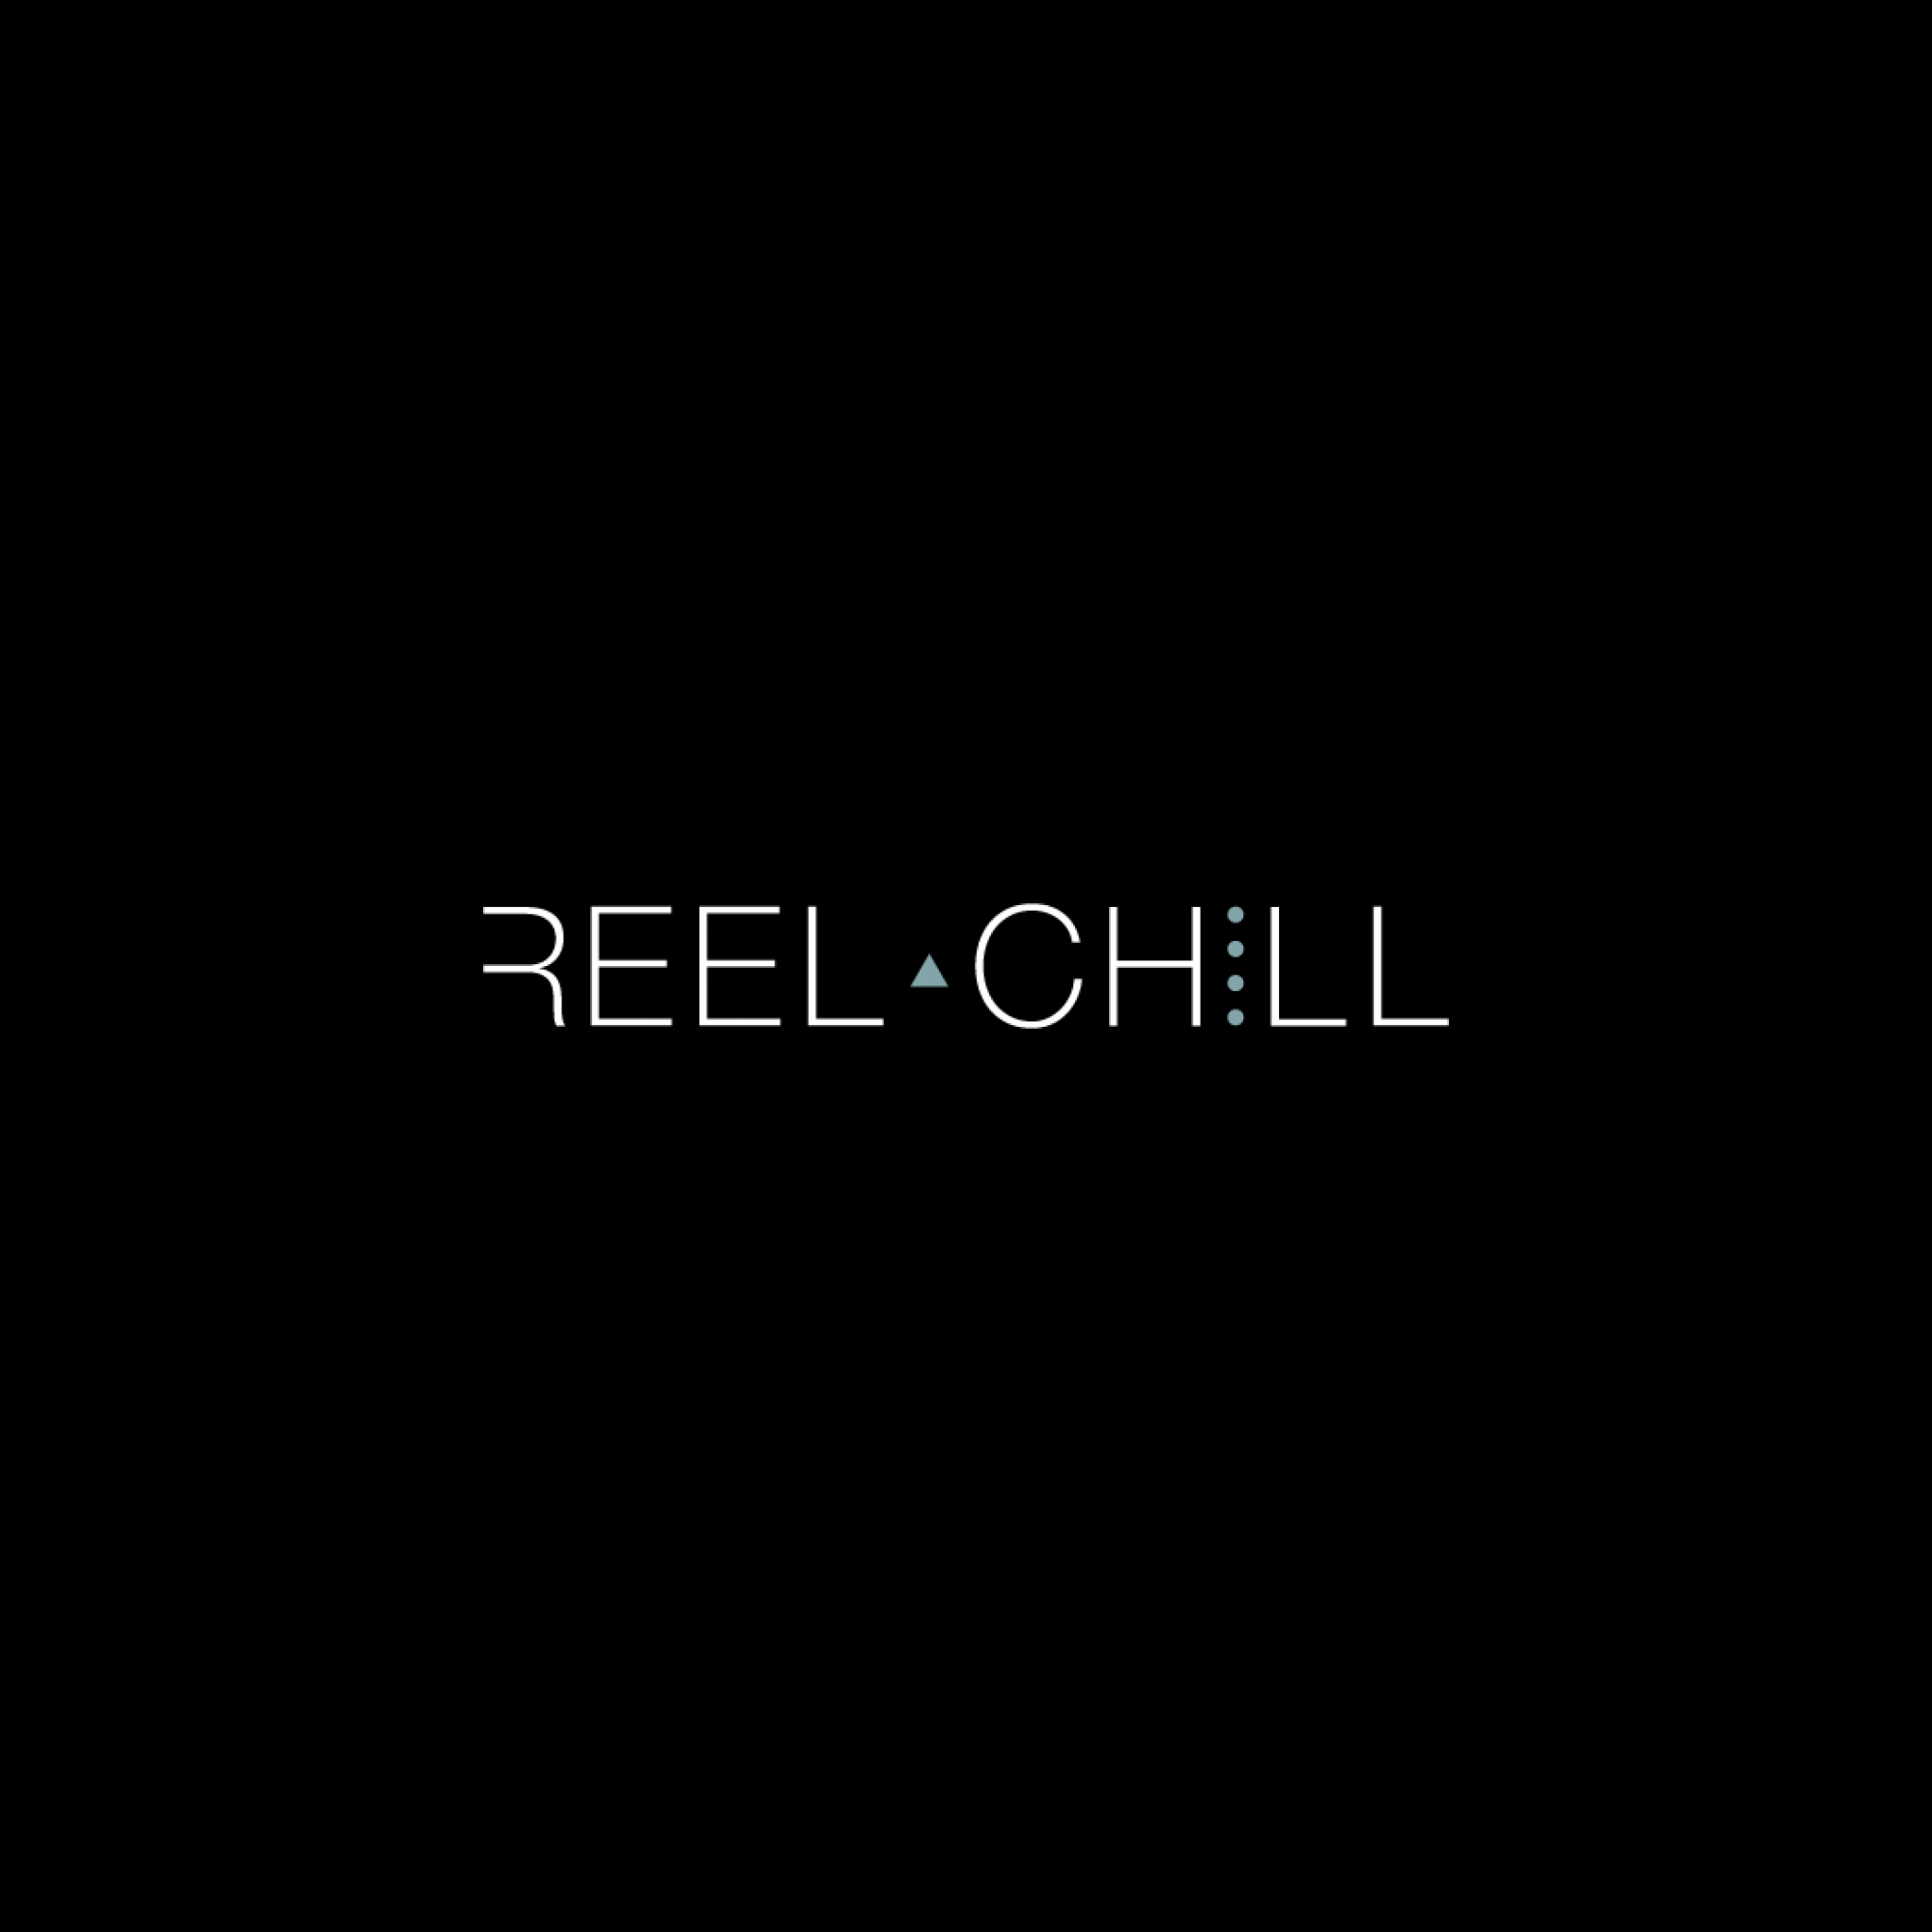 The Reel Chill